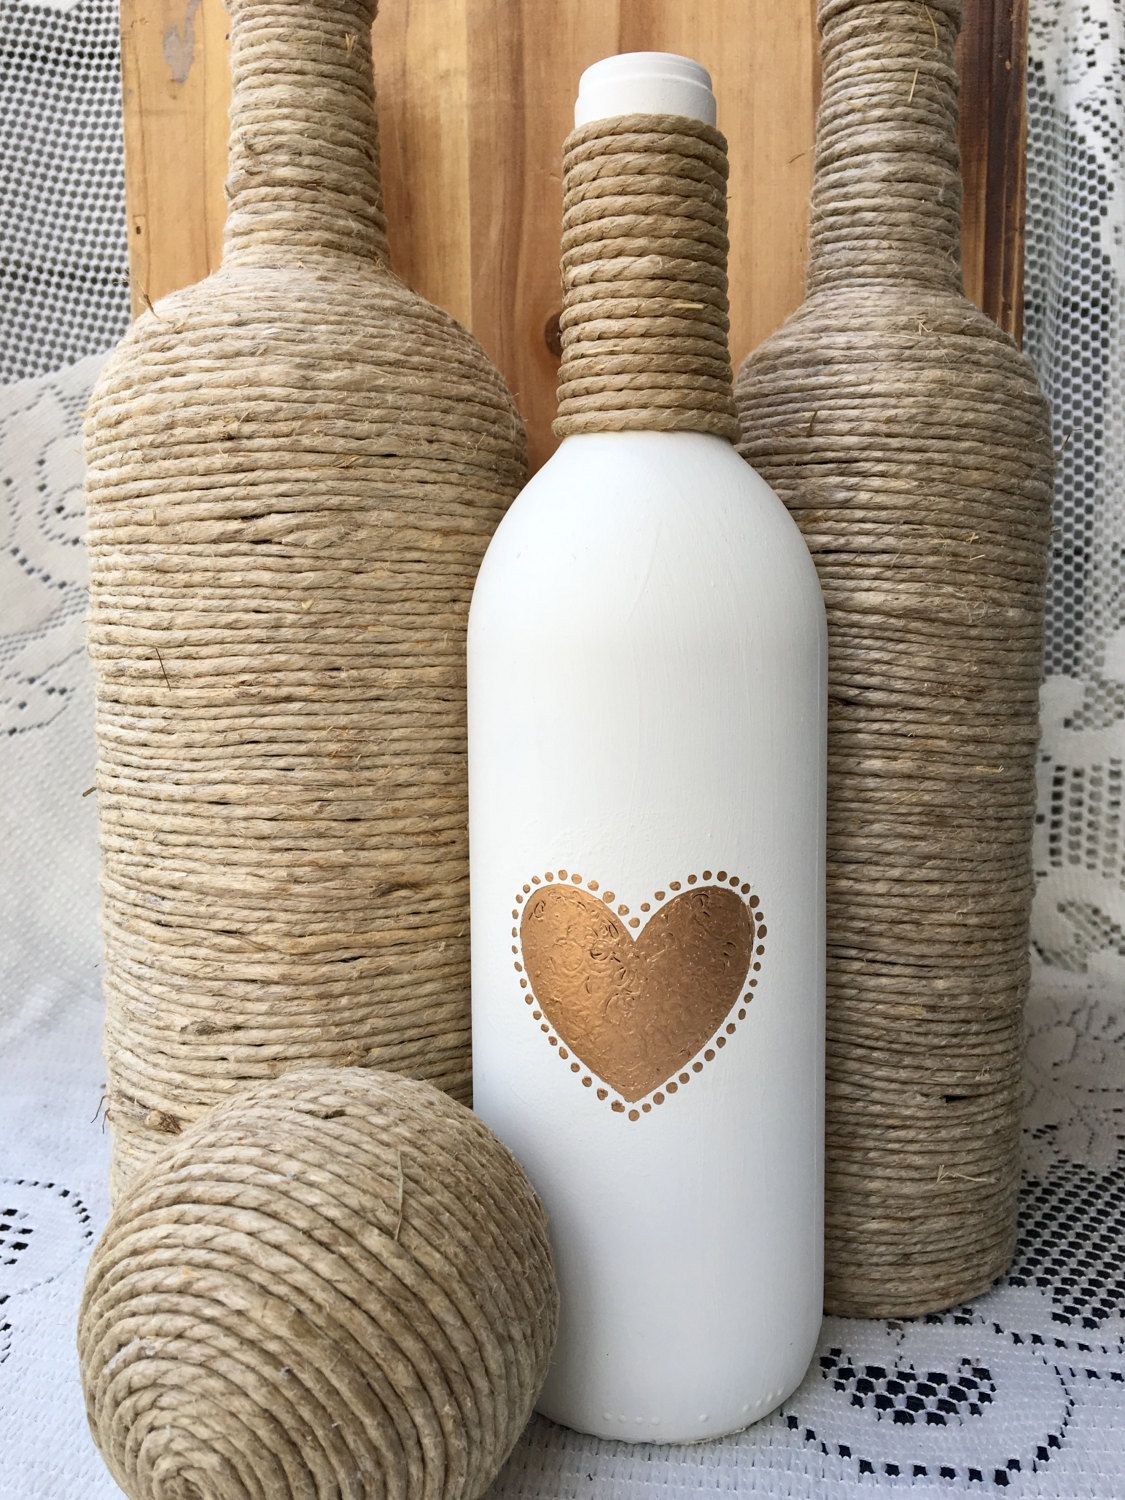 Bottle Decorations Gold Heart Hand Painted Bottle Cream Colored With Twine